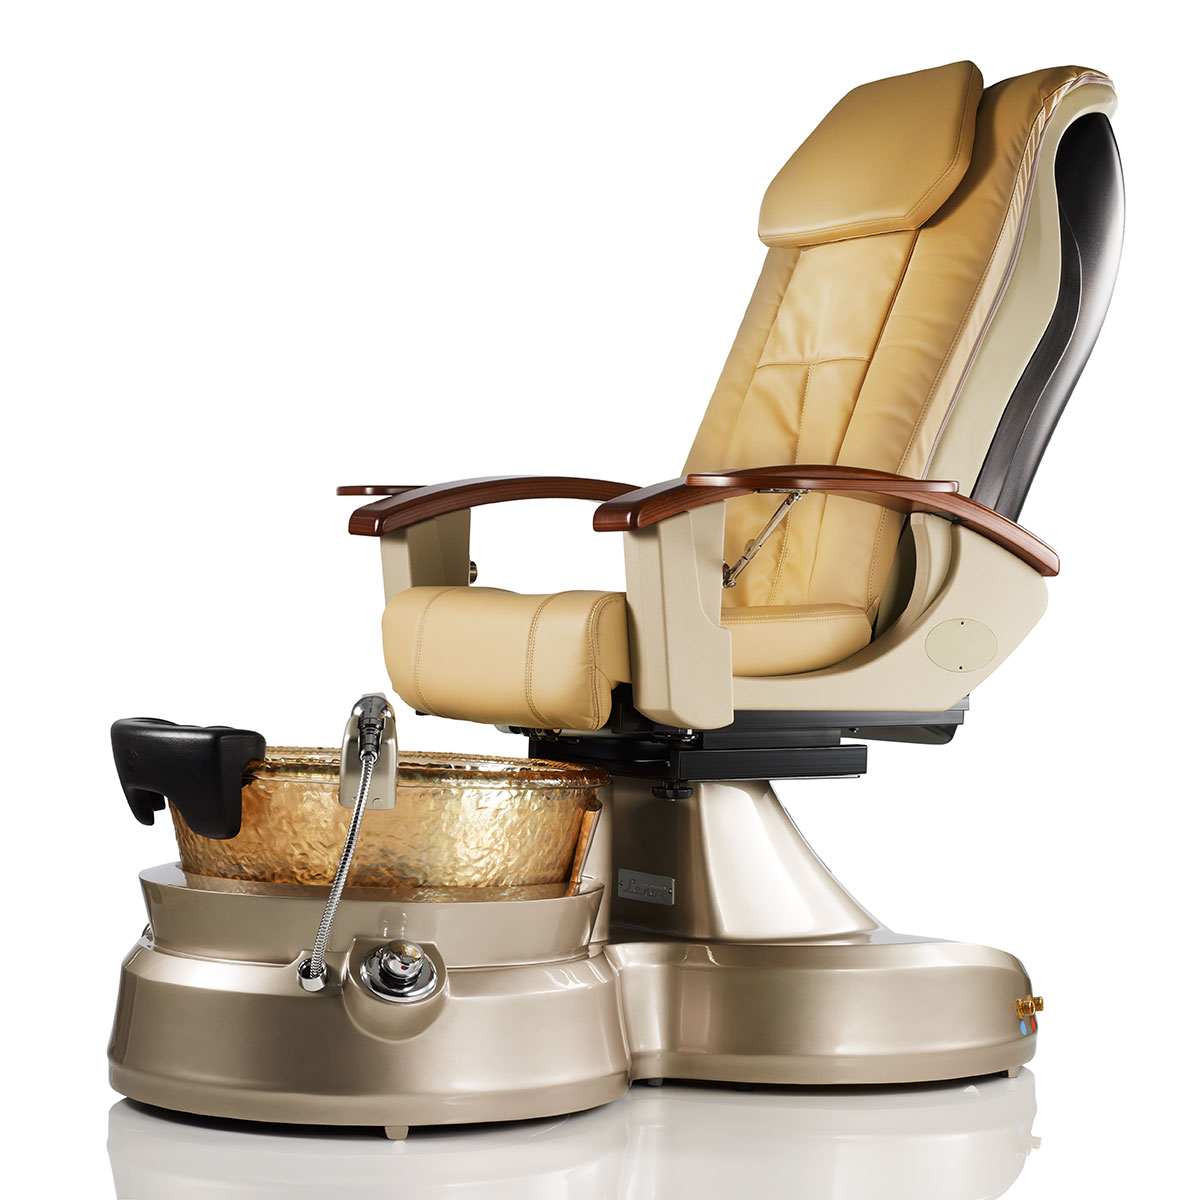 Sillones Pedicura Spa Lenox Pedicure Spa Lenox Pedicure Chair